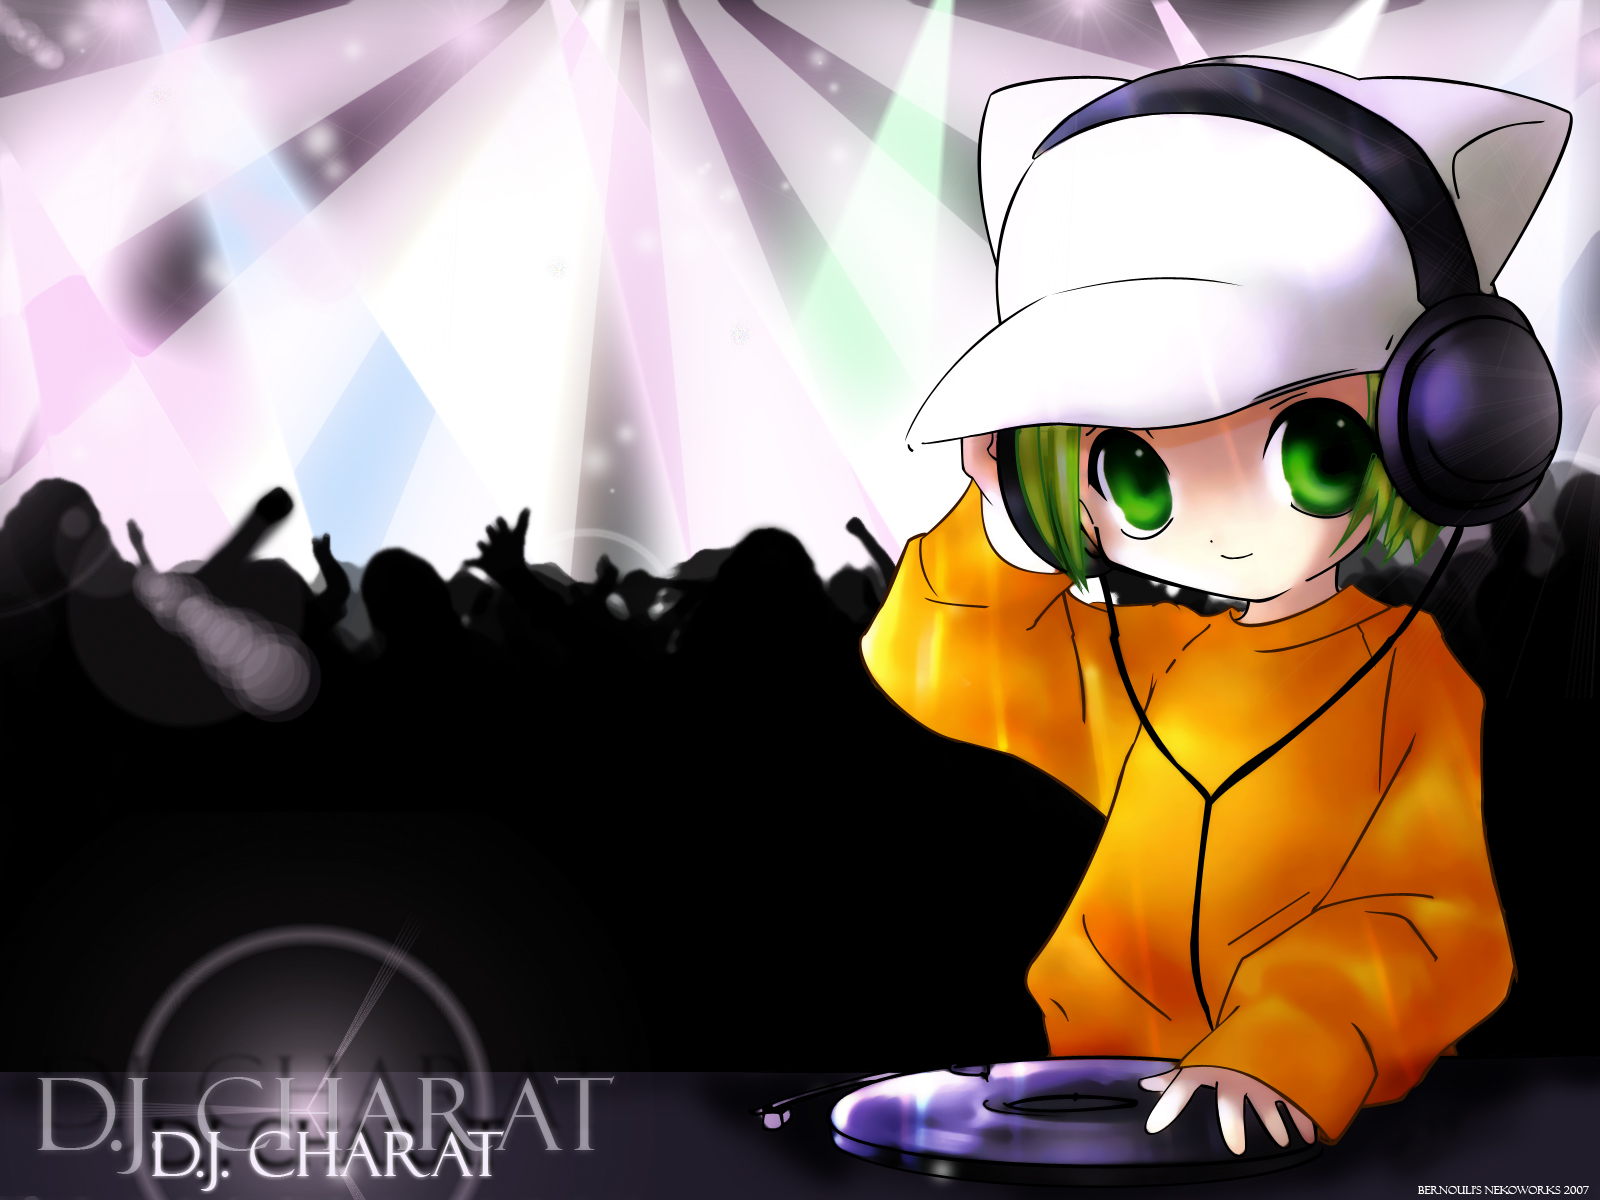 DJ Anime Girl With Headphones